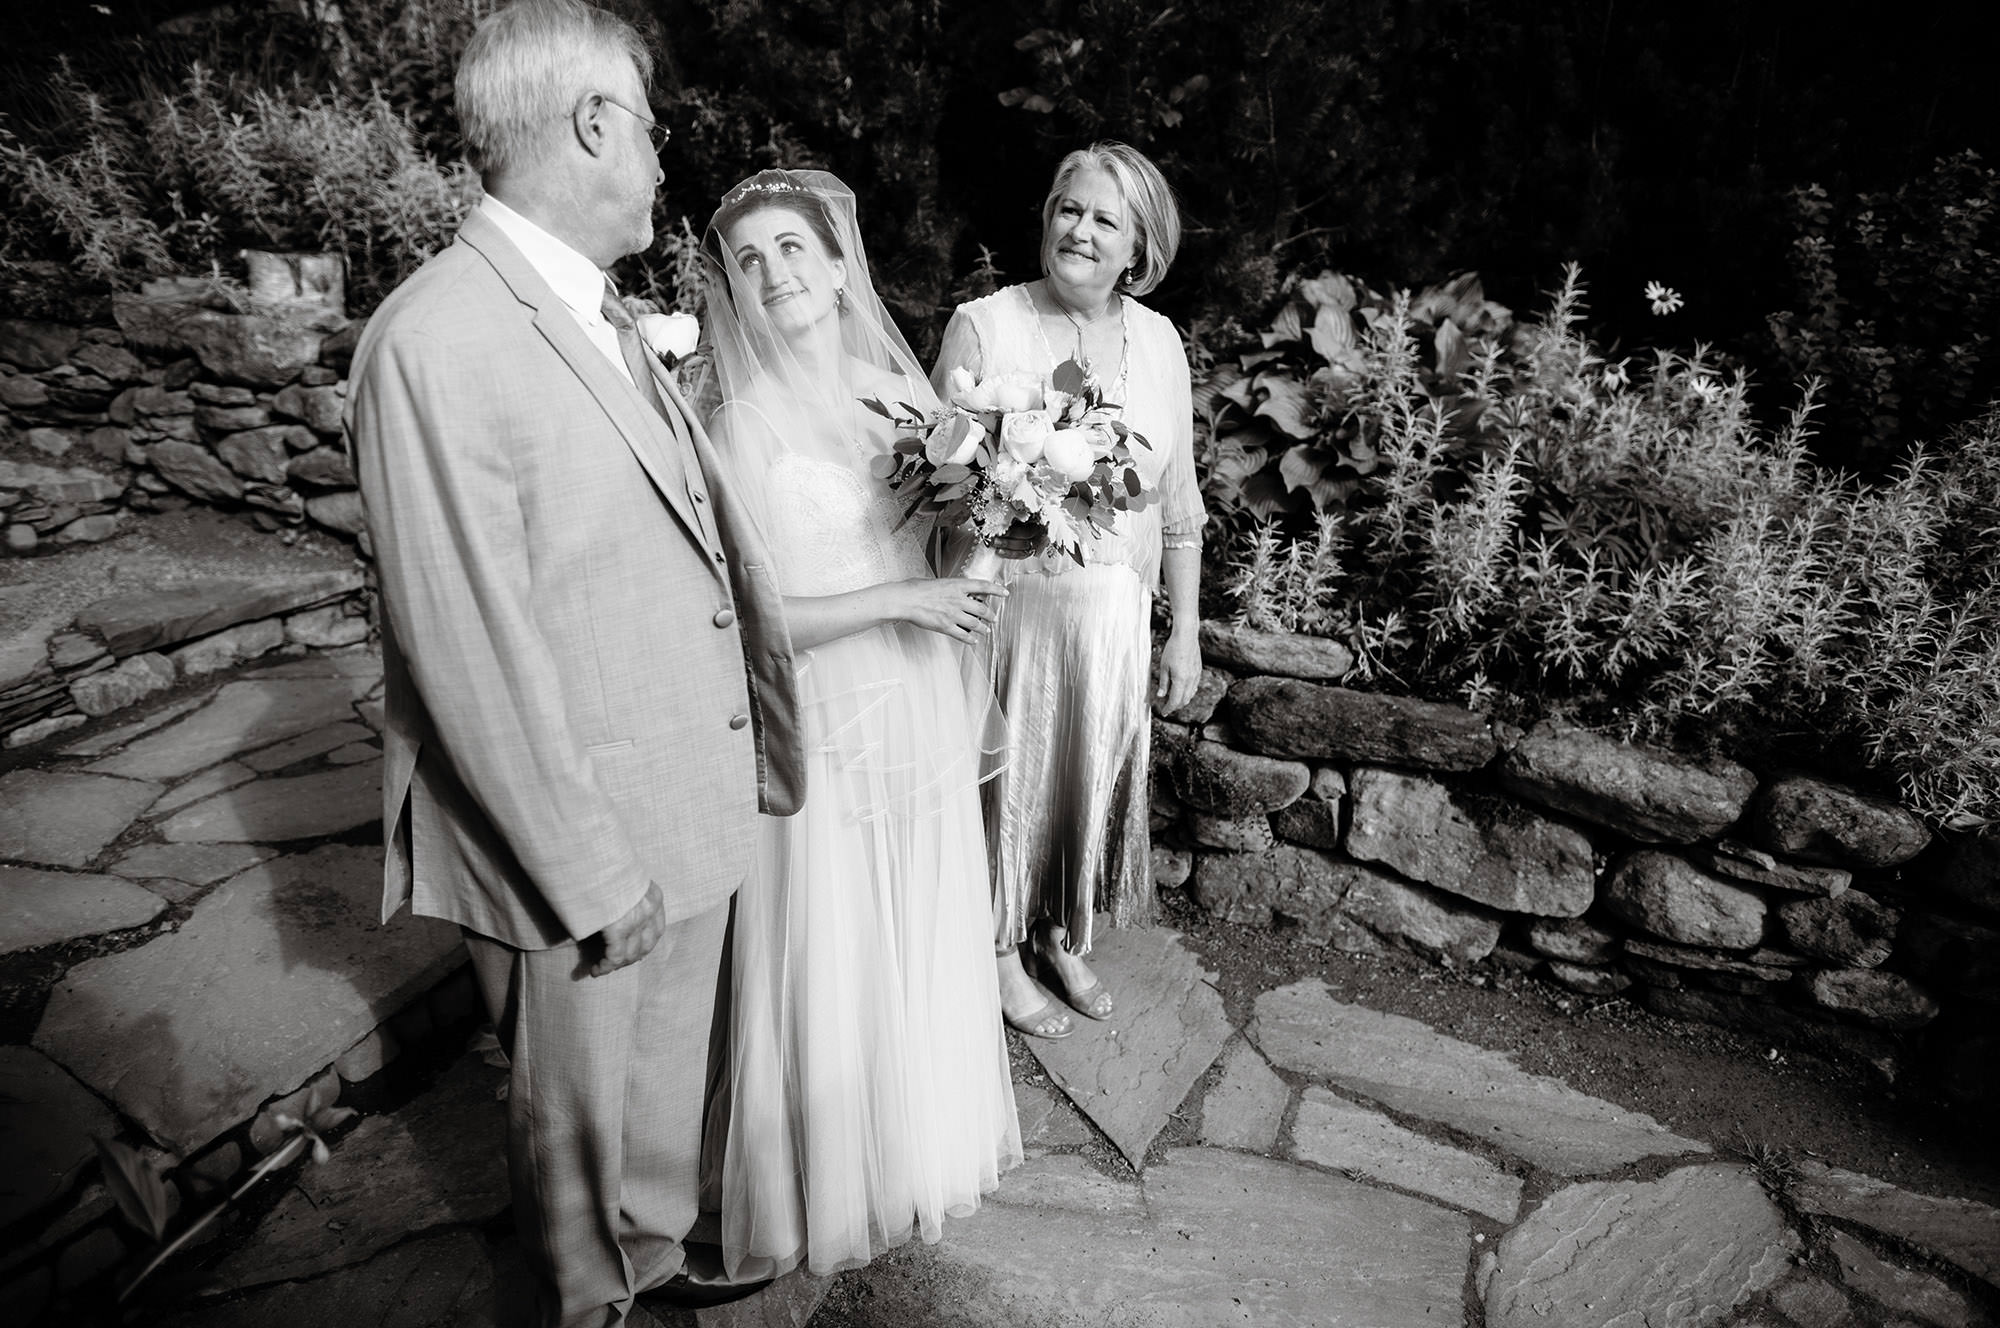 The bride waits with her parents prior to the ceremony.